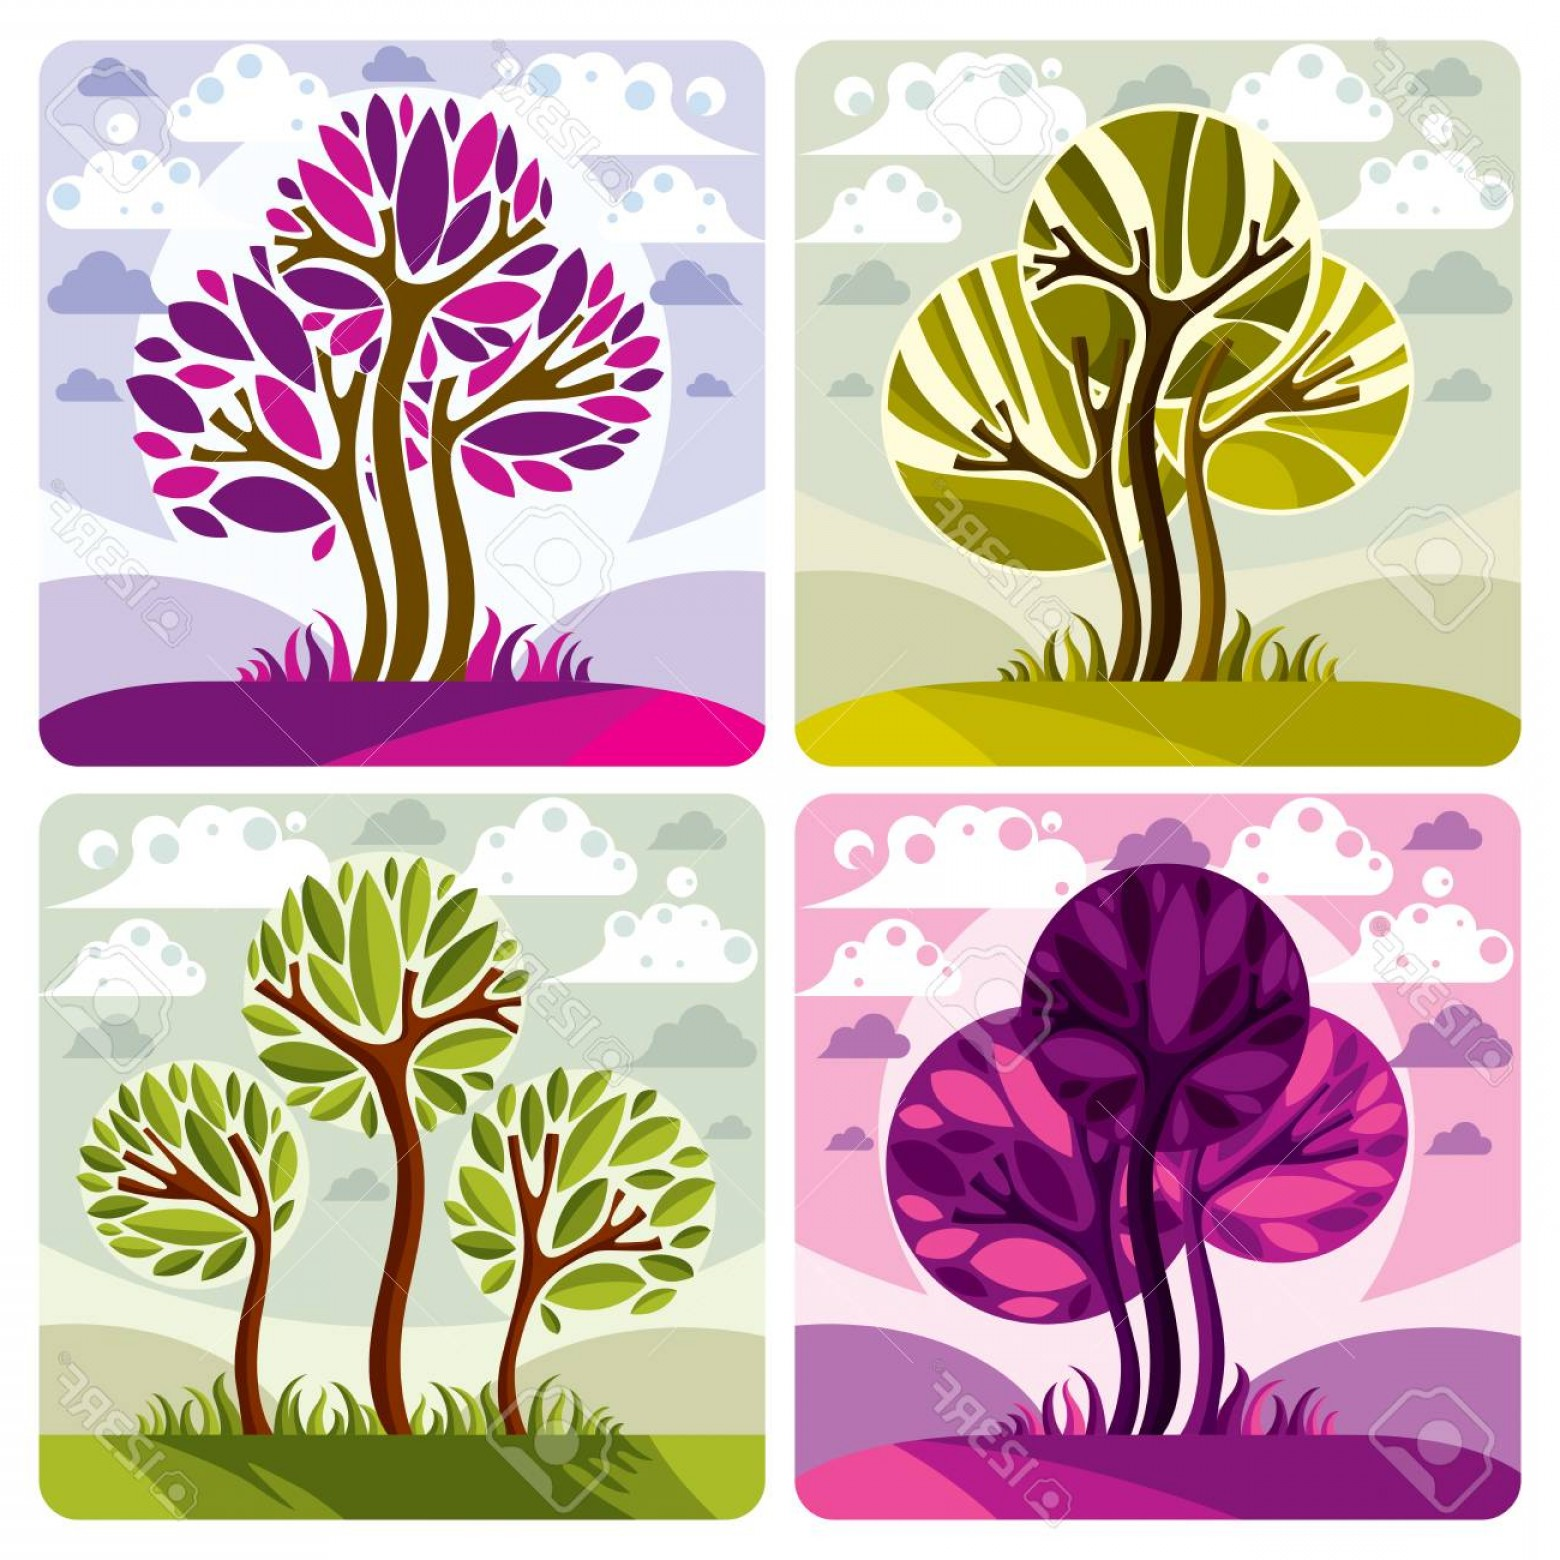 Purple Tree Vector: Photostock Vector Green And Purple Trees Placed On Cloudy Background Environment And Ecology Idea Vector Image Vector